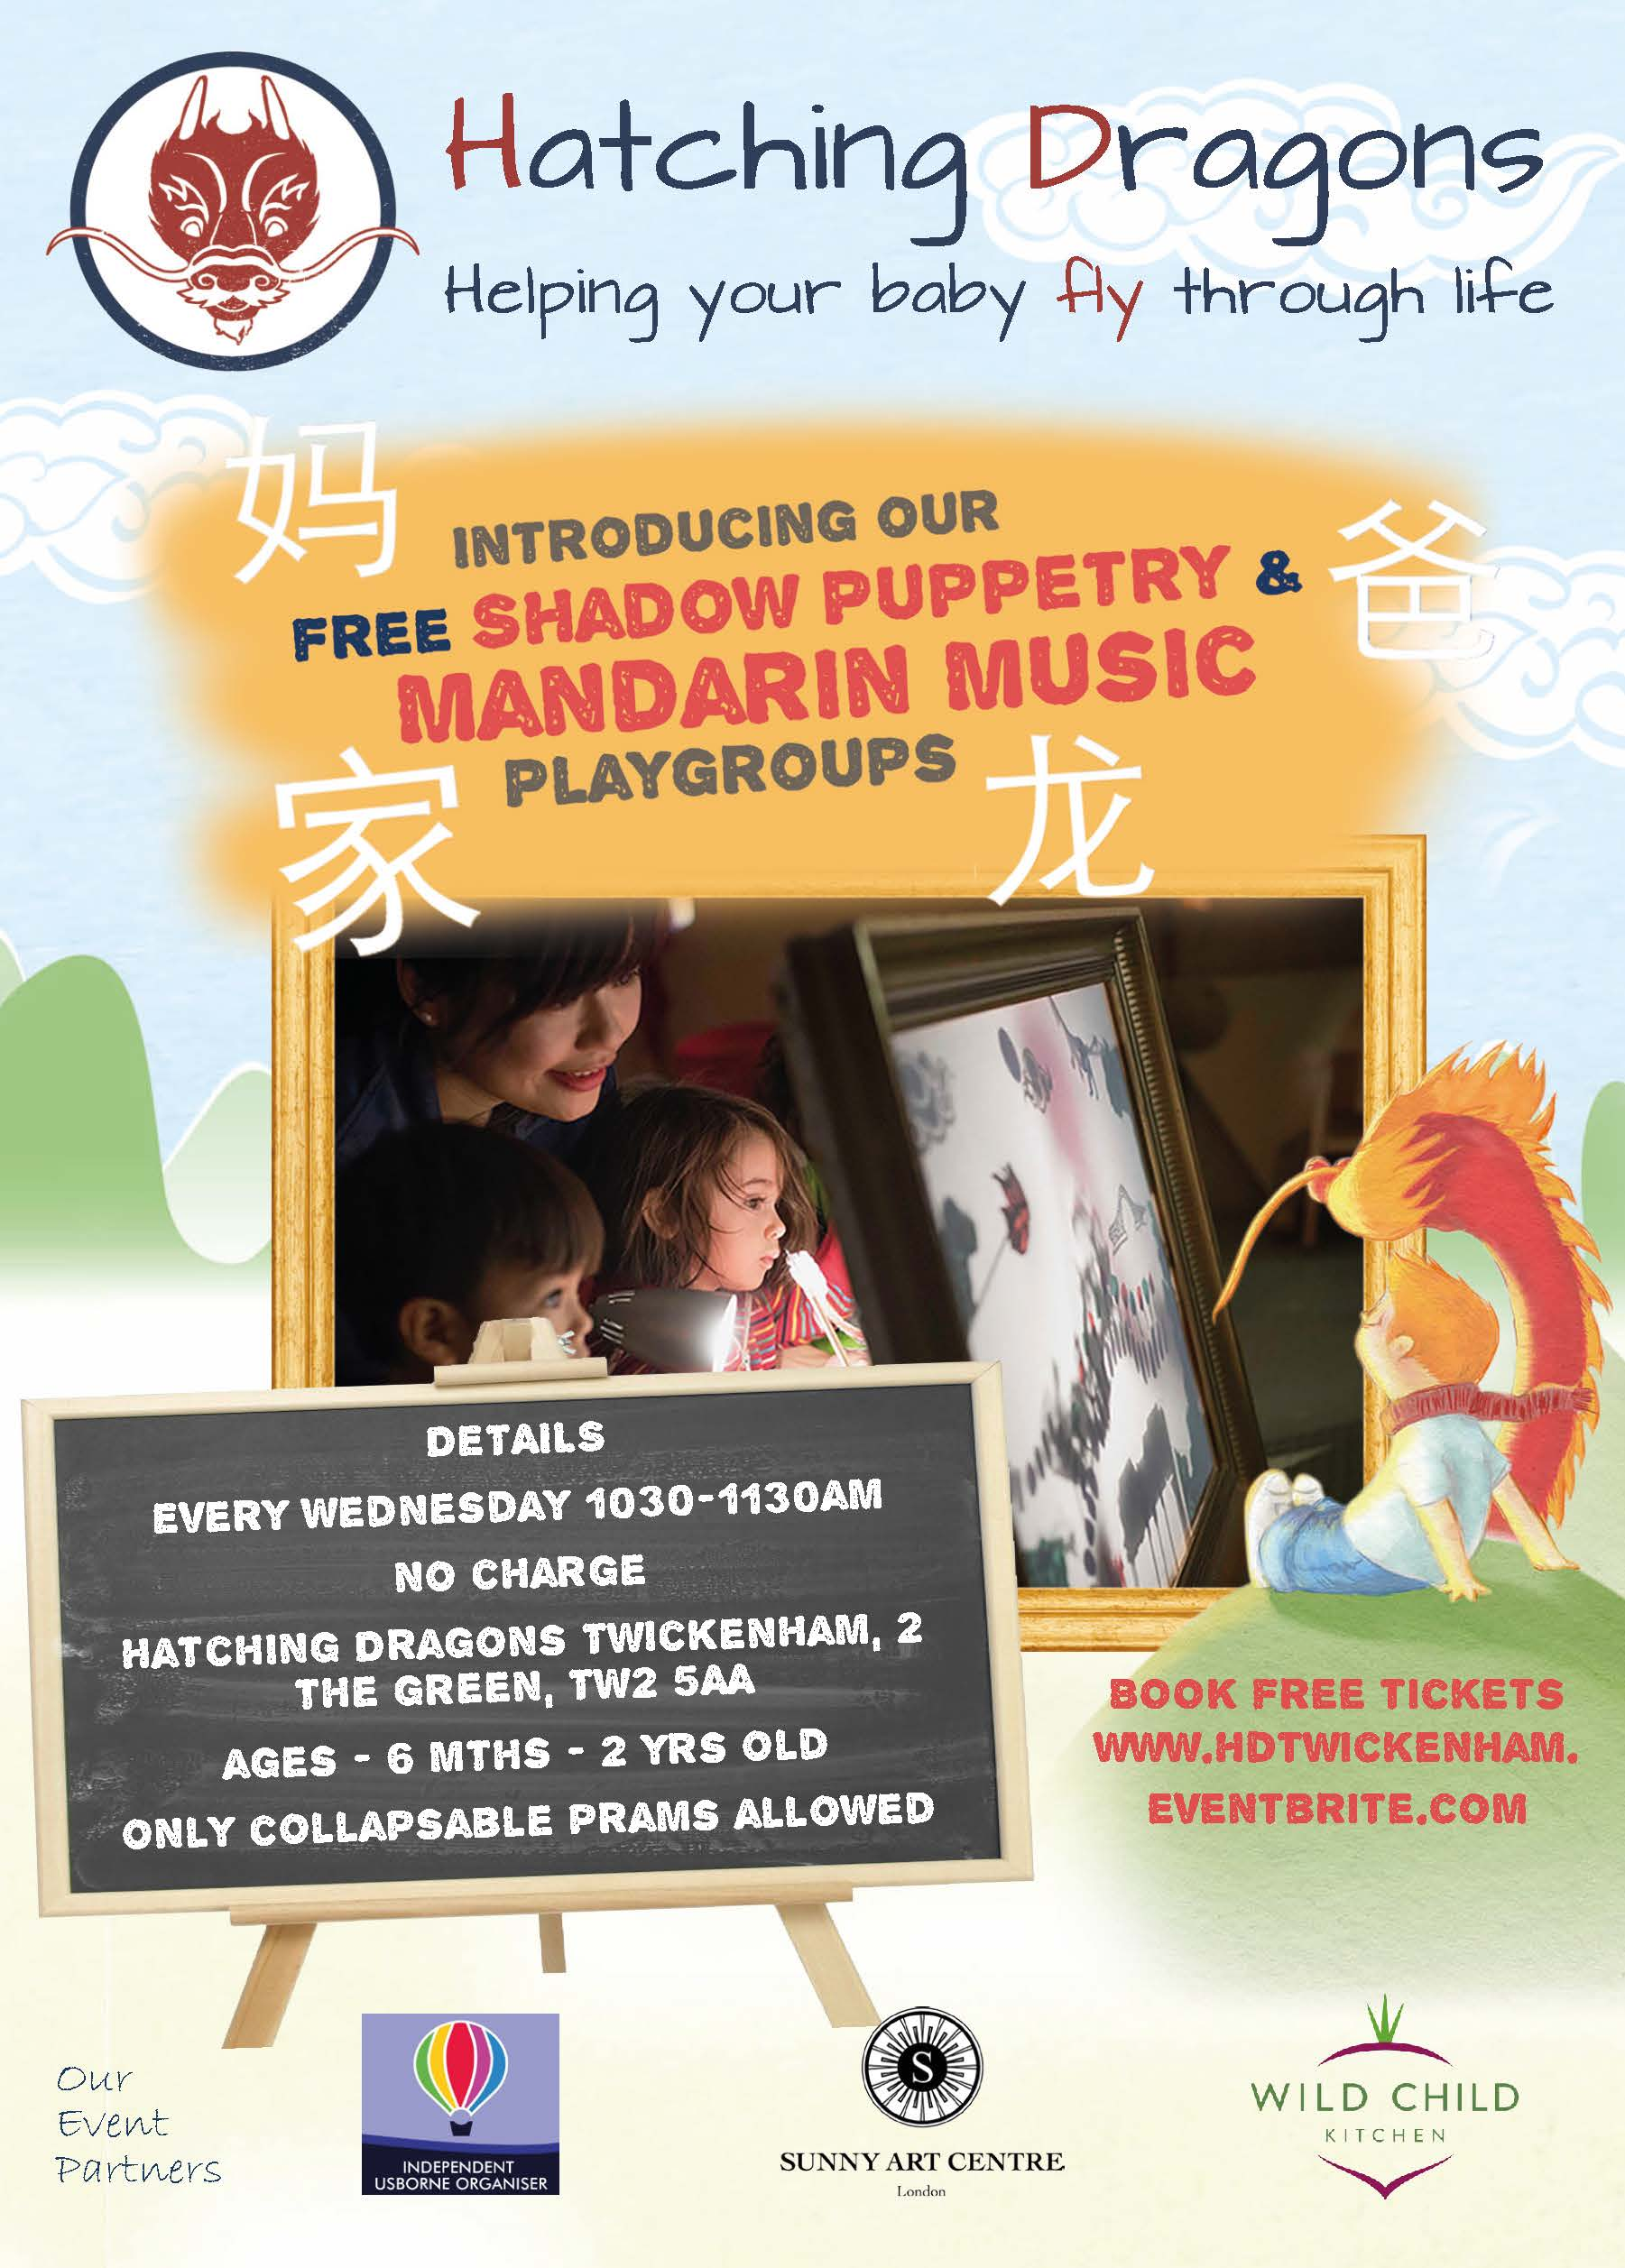 Hatching Dragons Bilingual Mandarin Music & Shadow Puppetry Playgroup